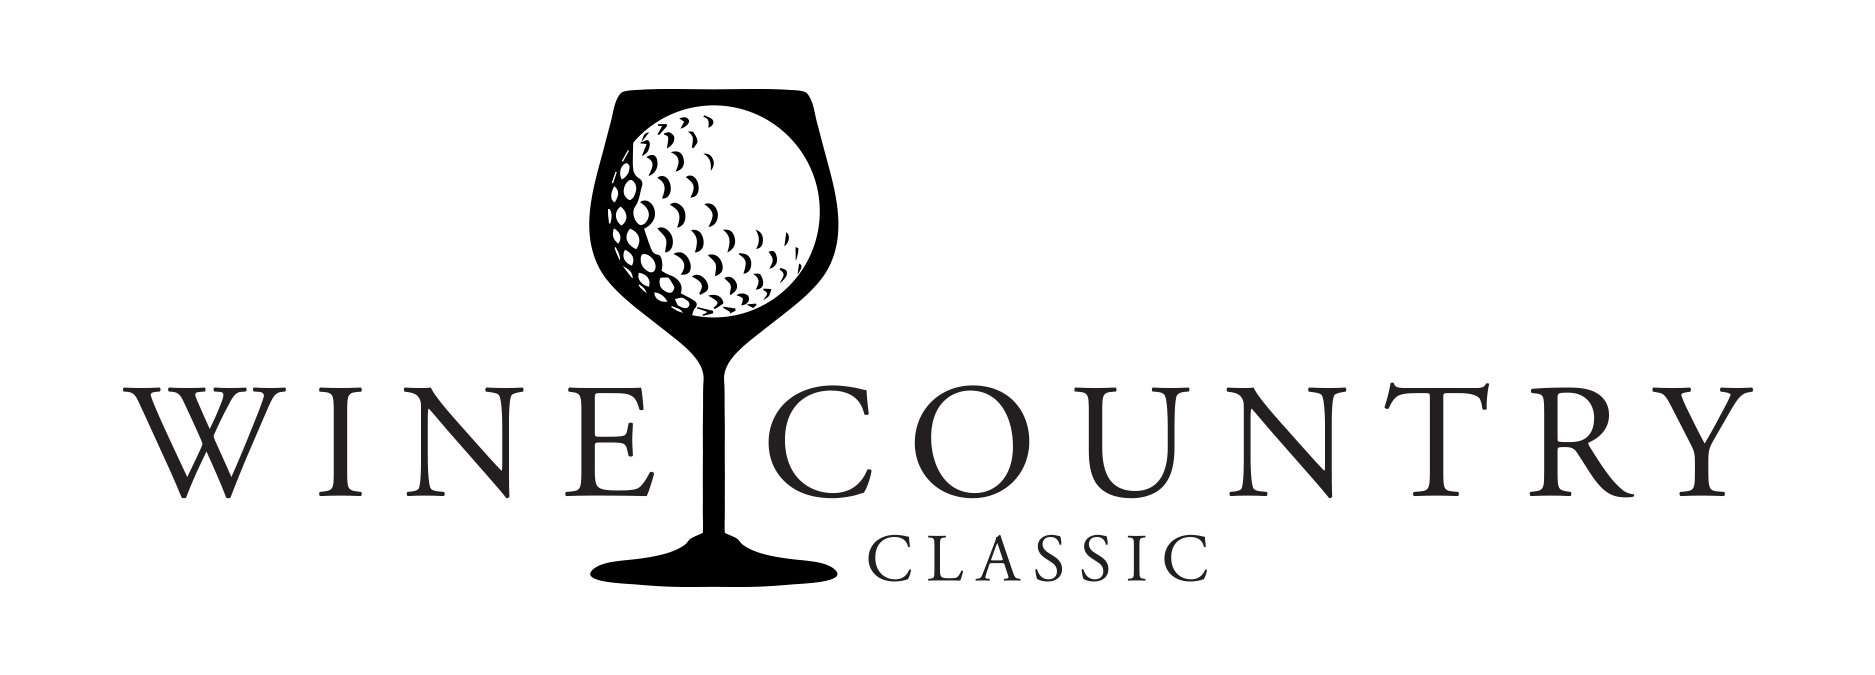 Temecula Chamber of Commerce | Wine Country Classic